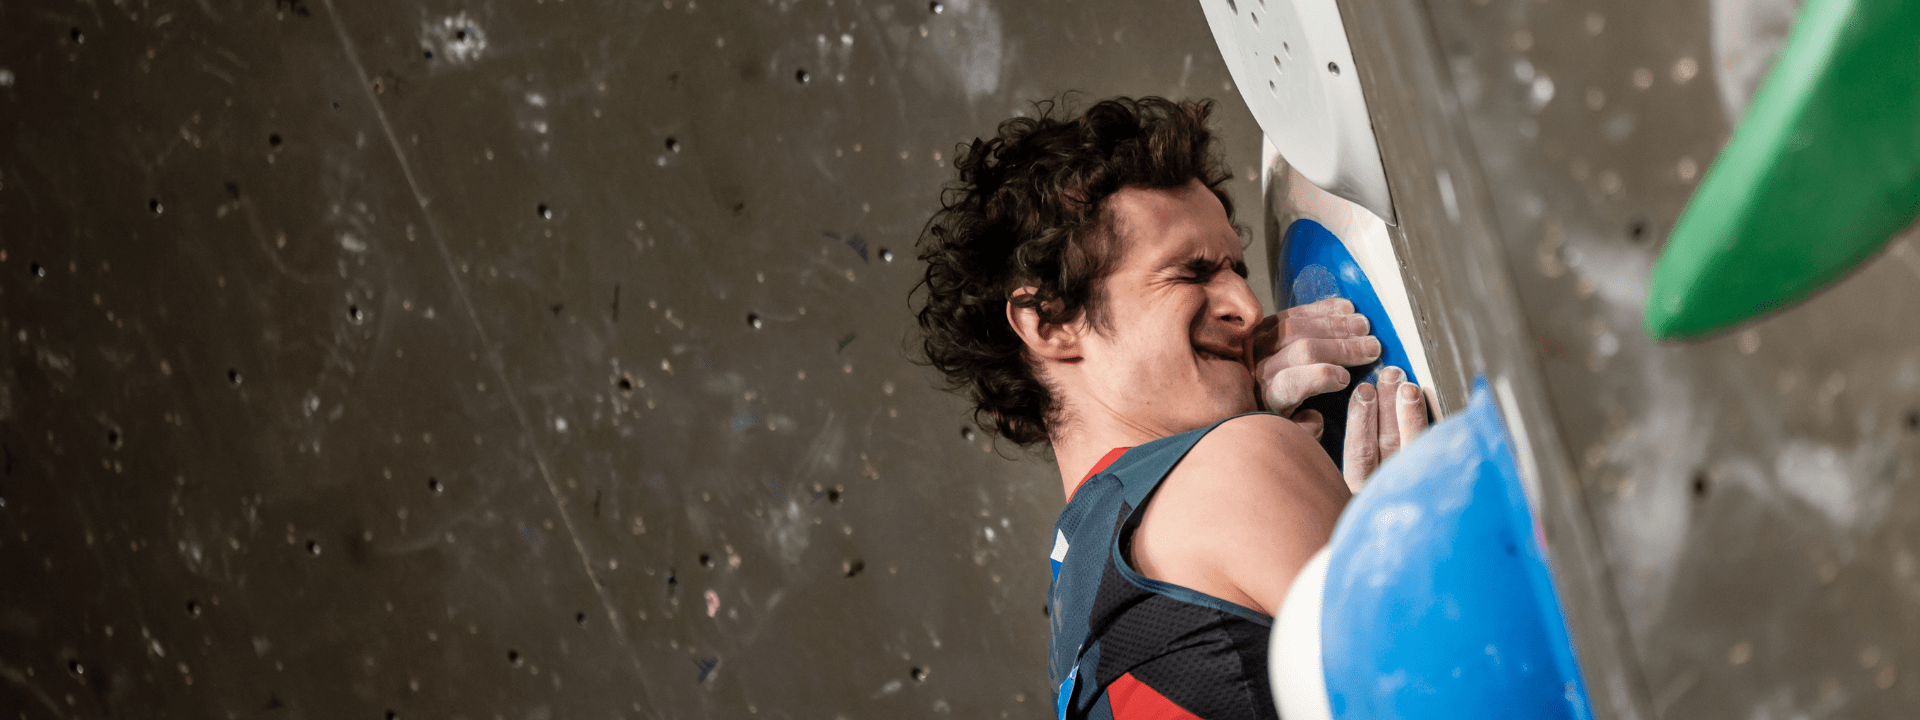 FUJII AND ONDRA LEAD THE WAY INTO THE MEN'S SEMI-FINAL IN MEIRINGEN